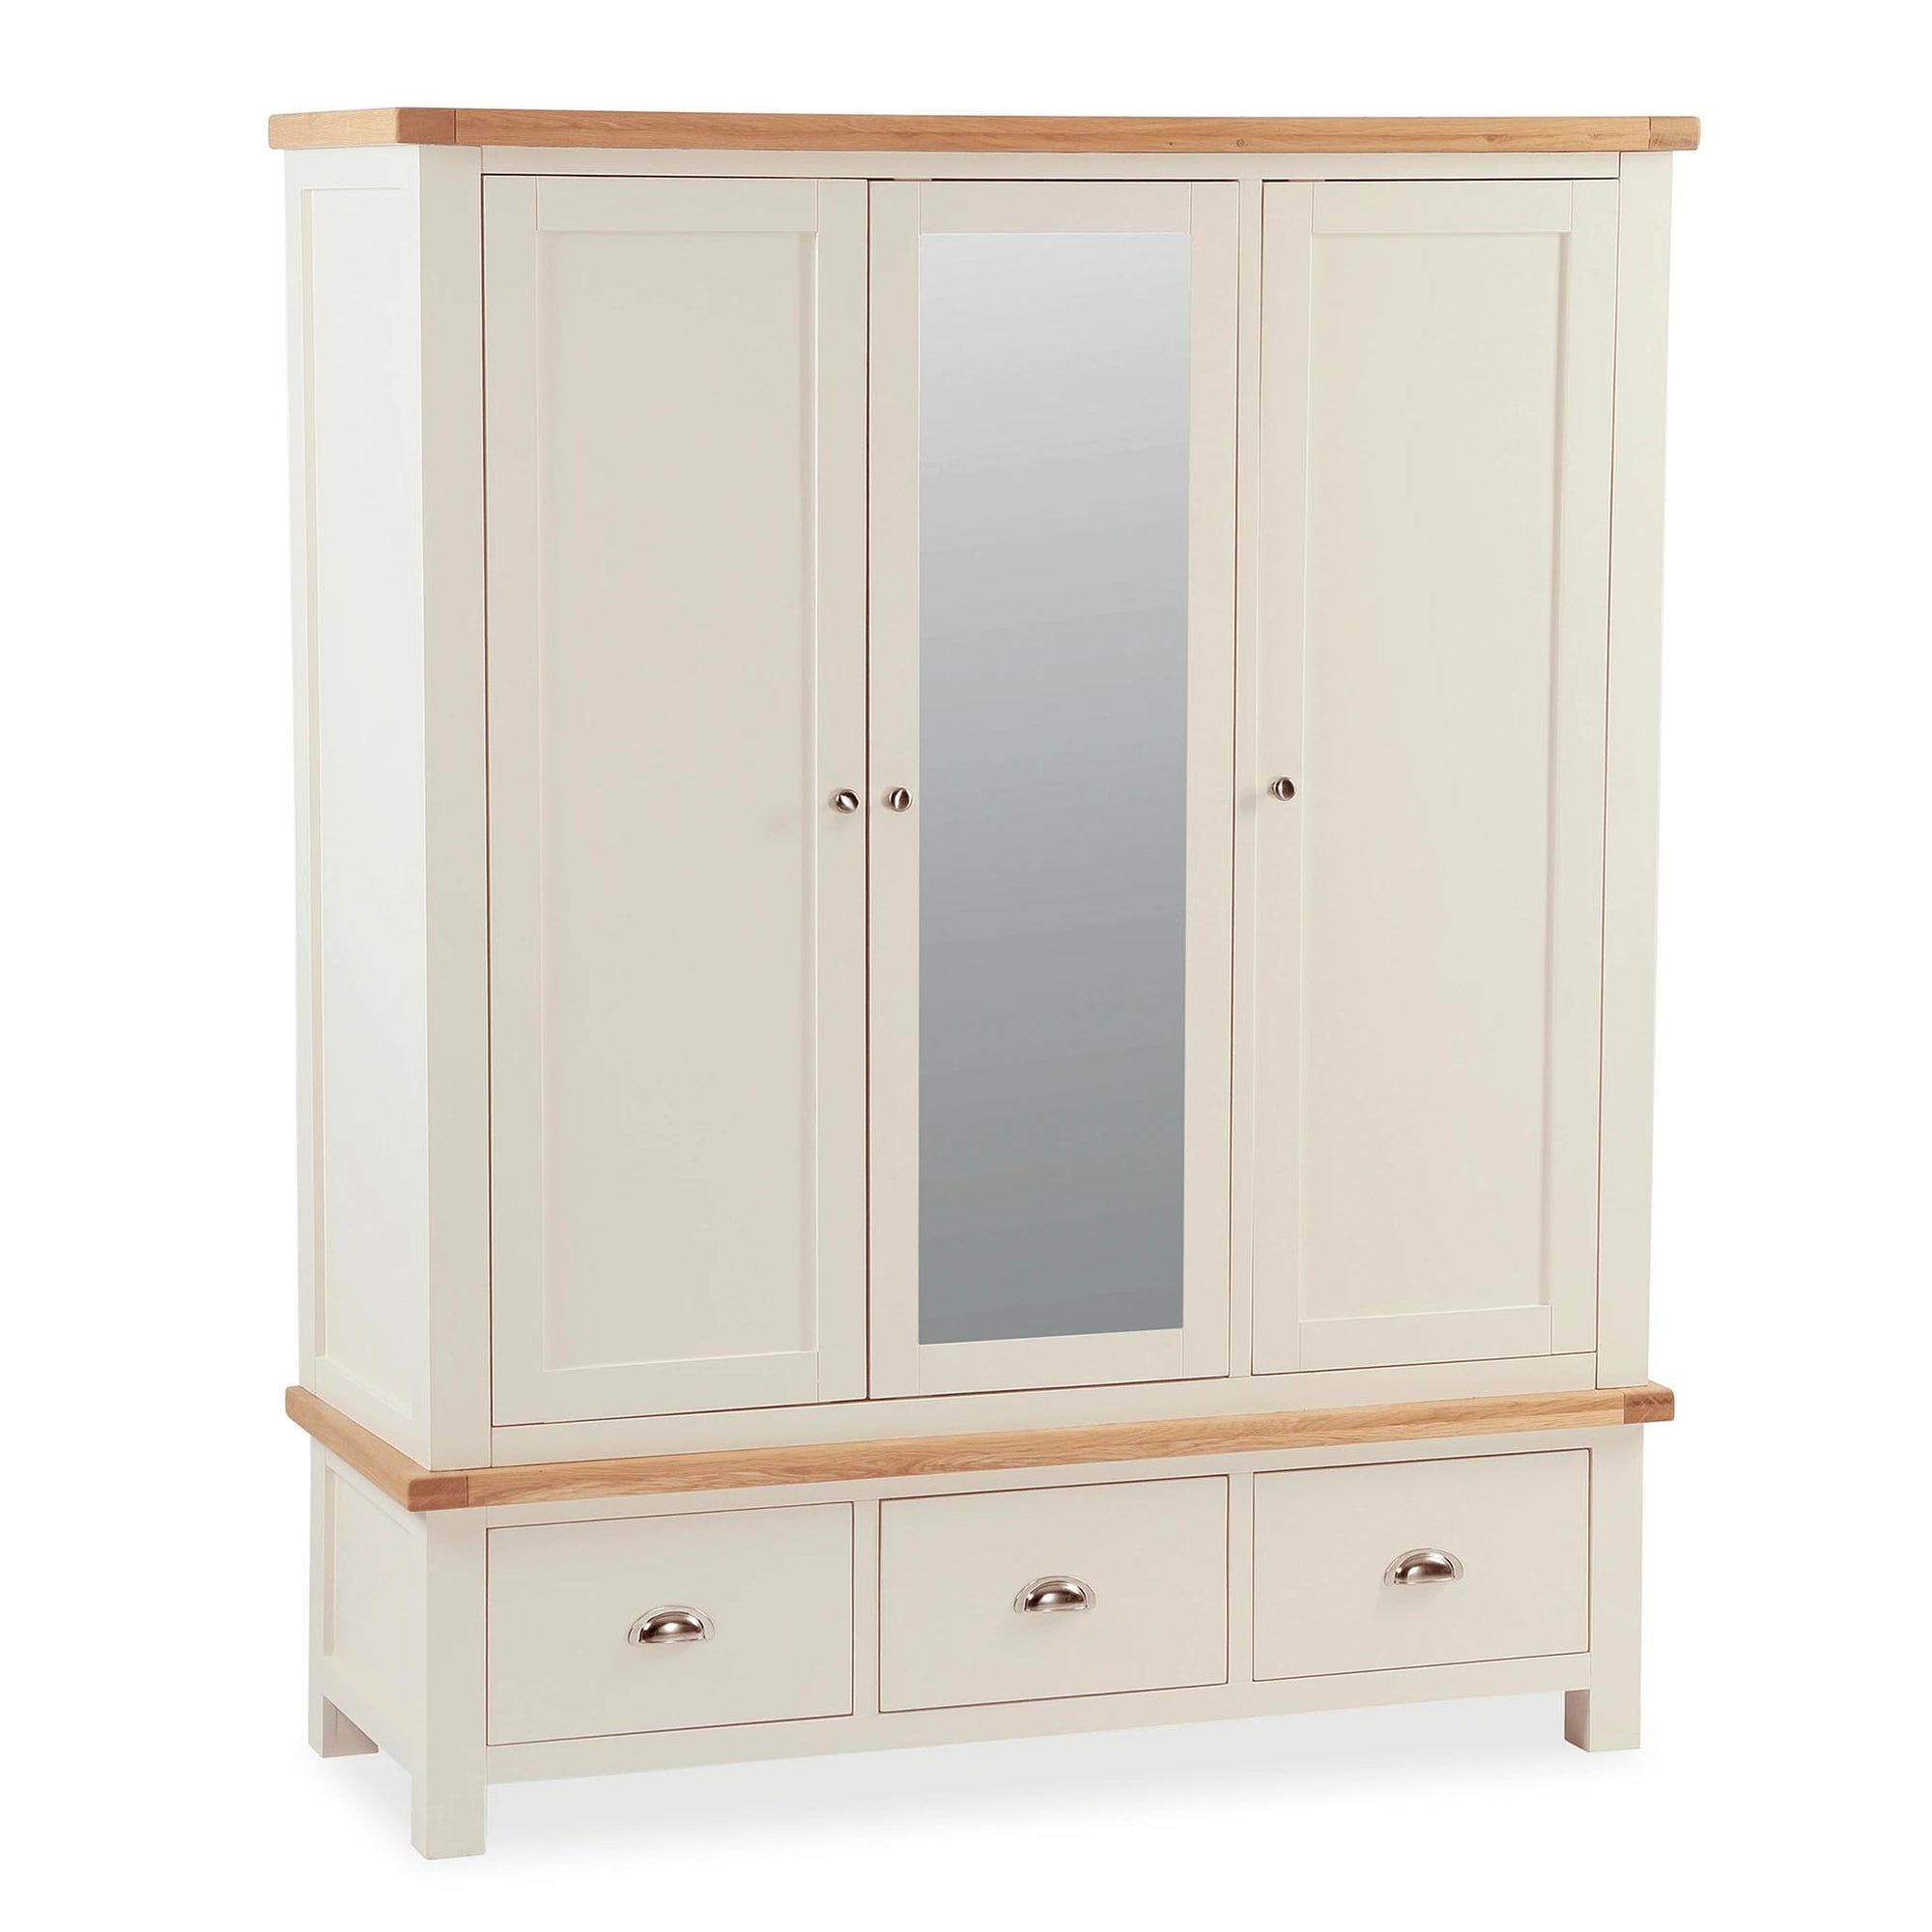 The Daymer Cream 3 Door Triple Wardrobe with Mirror and 3 Drawers from Roseland Furniture